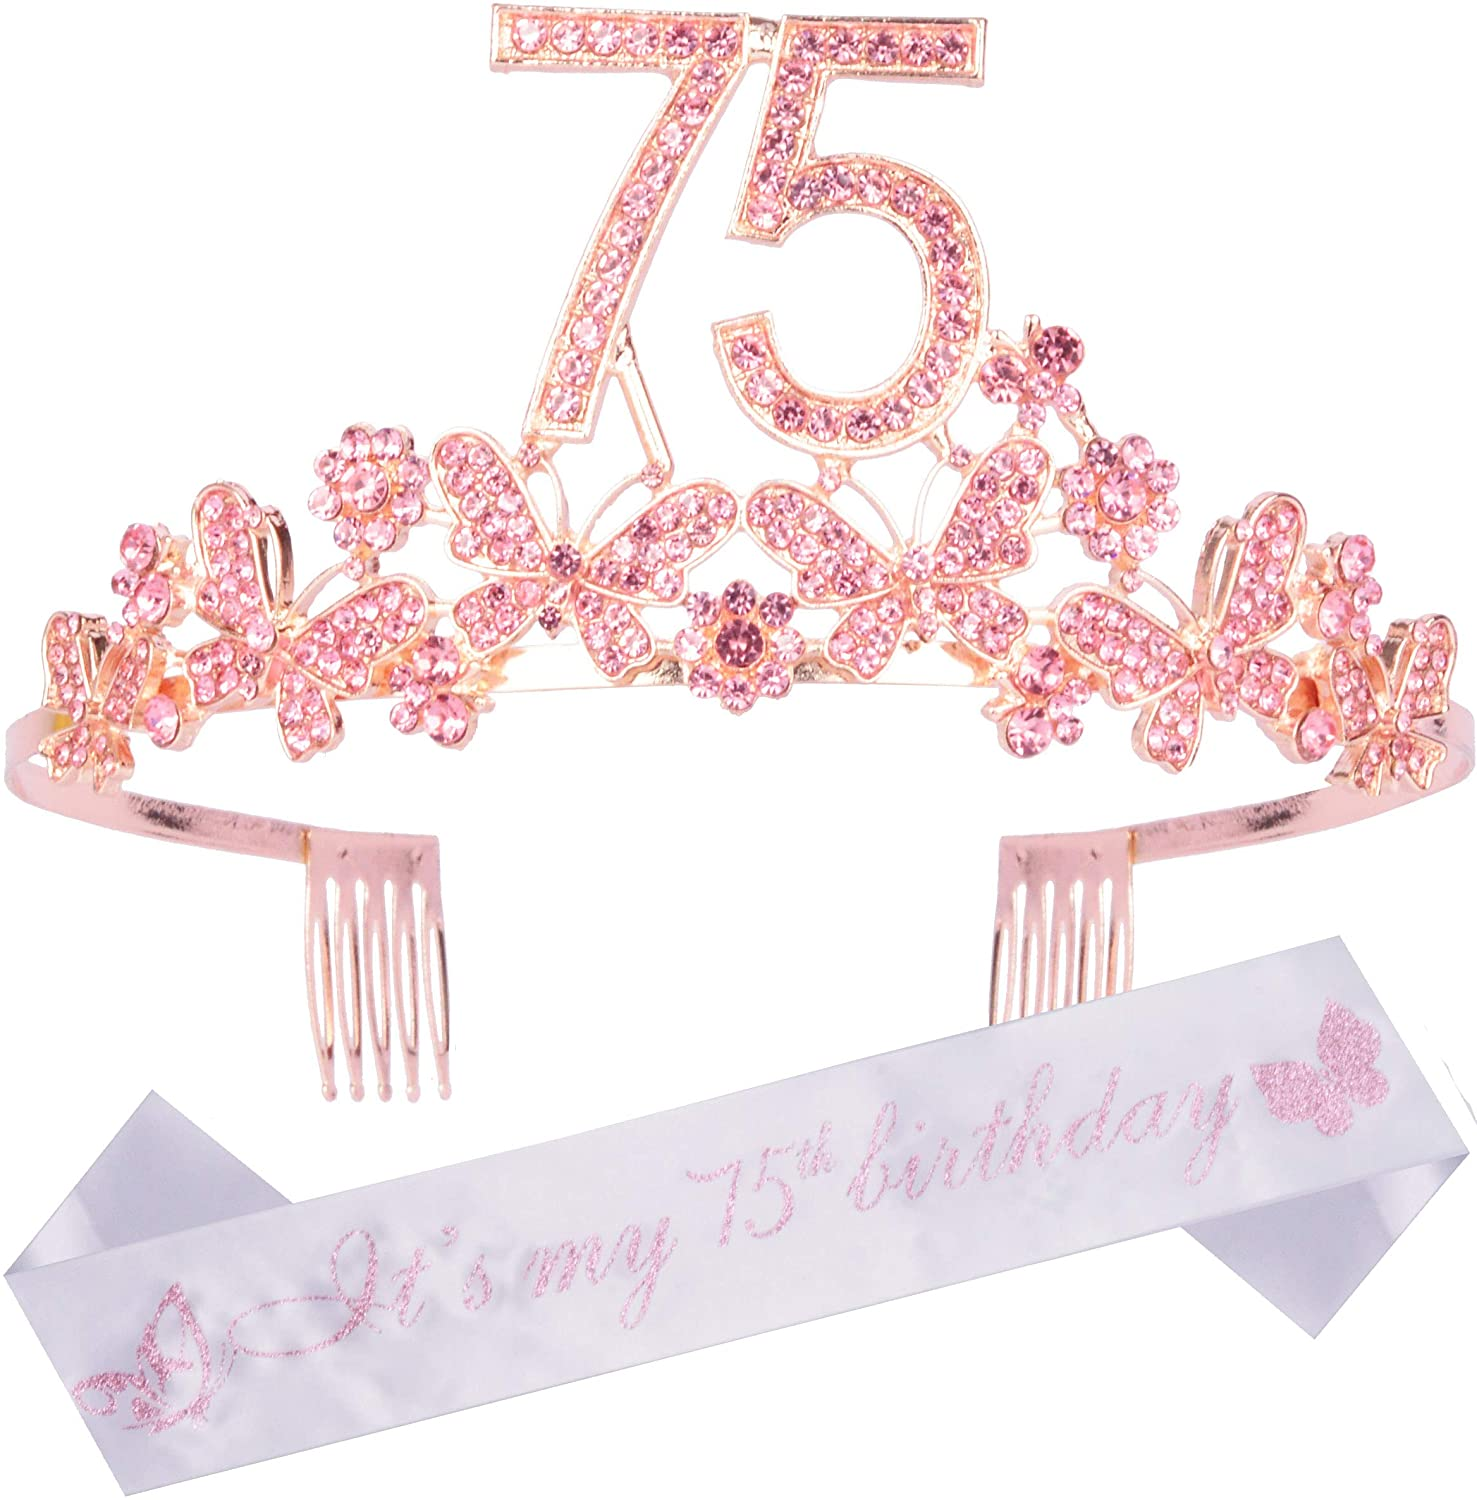 75th Birthday Decorations Party Supplies, 75th Birthday Gifts, Pink 75th Birthday Tiara and Sash, 75th White Satin Sash It's My 75th Birthday, 75th Birthday Party Supplies and Decorations, Happy 75th